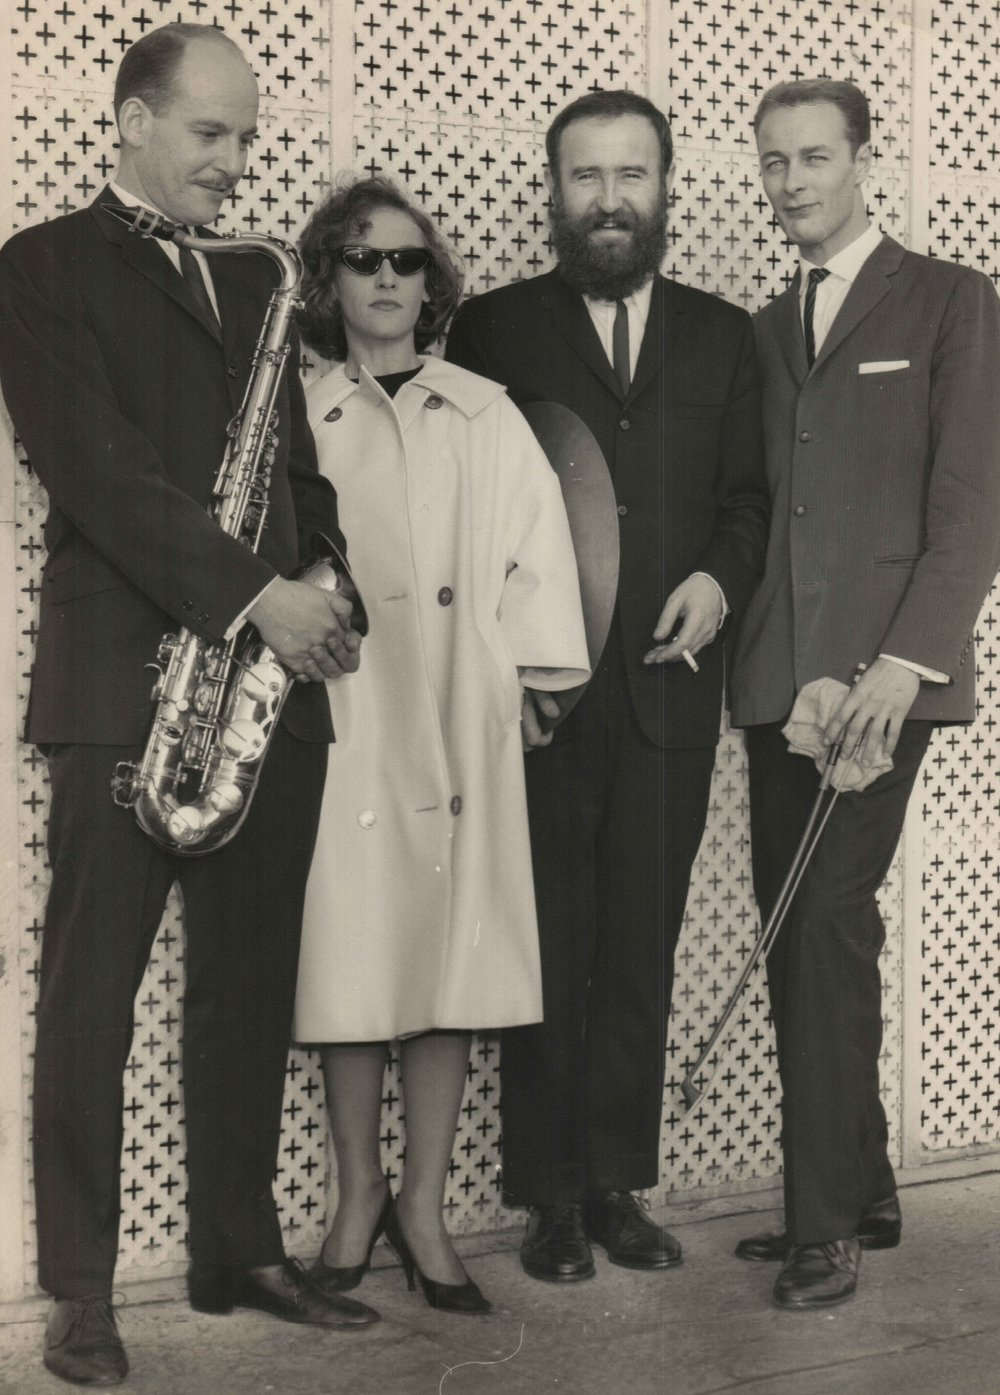 L-R, Errol Buddle, Judy Bailey, John Sangster, Mike Ross